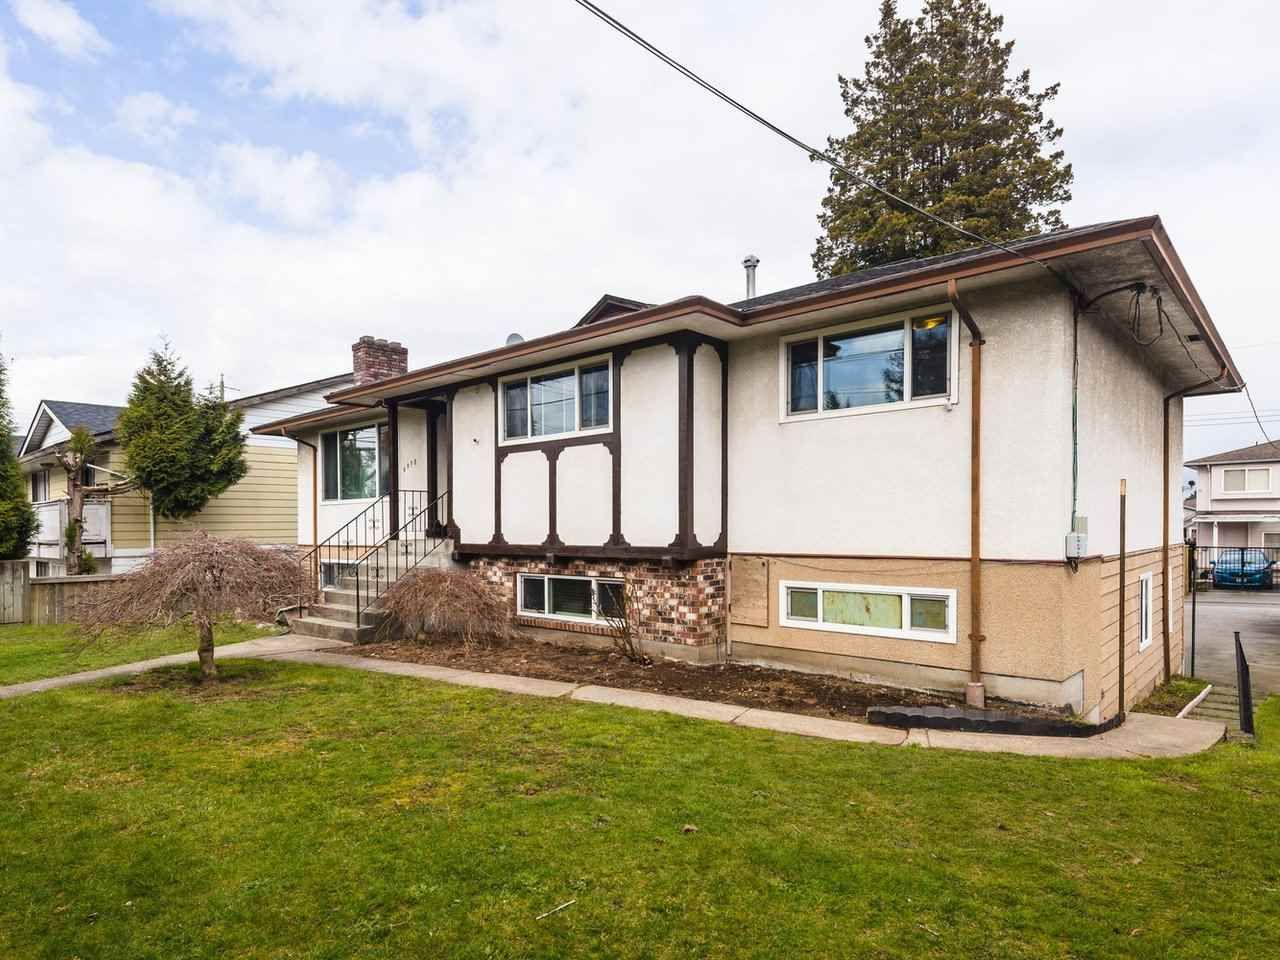 Main Photo: 6930 CANADA Way in Burnaby: Burnaby Lake House for sale (Burnaby South)  : MLS®# R2572259